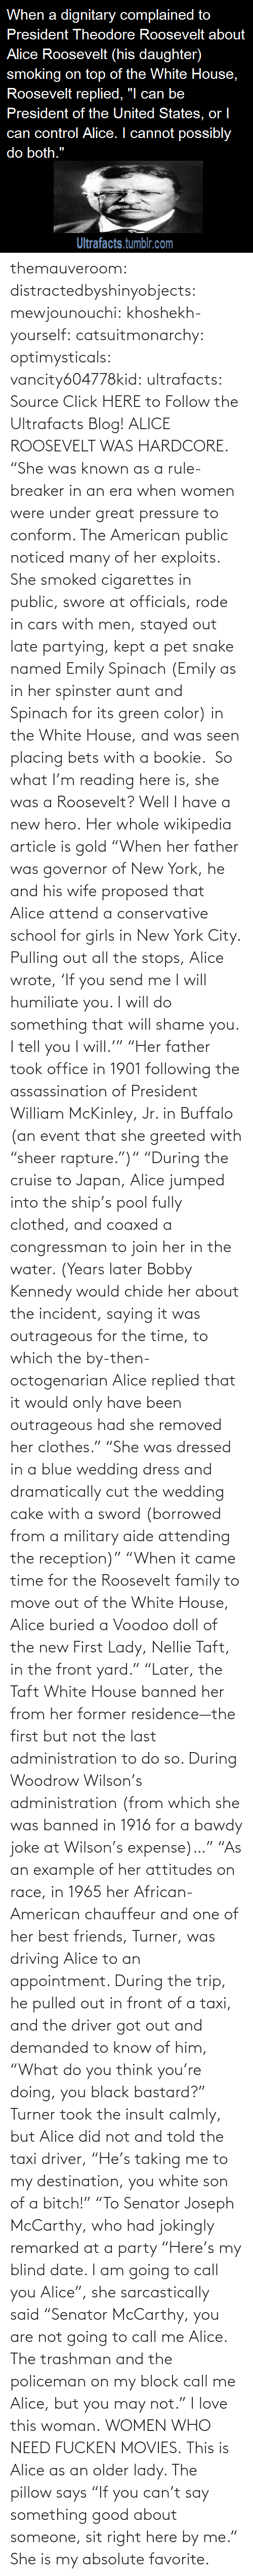 "so what: themauveroom: distractedbyshinyobjects:  mewjounouchi:  khoshekh-yourself:  catsuitmonarchy:  optimysticals:  vancity604778kid:  ultrafacts:     Source Click HERE to Follow the Ultrafacts Blog!     ALICE ROOSEVELT WAS HARDCORE. ""She was known as a rule-breaker in an era when women were under great pressure to conform. The American public noticed many of her exploits. She smoked cigarettes in public, swore at officials, rode in cars with men, stayed out late partying, kept a pet snake named Emily Spinach (Emily as in her spinster aunt and Spinach for its green color) in the White House, and was seen placing bets with a bookie.    So what I'm reading here is, she was a Roosevelt?  Well I have a new hero.  Her whole wikipedia article is gold ""When her father was governor of New York, he and his wife proposed that Alice attend a conservative school for girls in New York City. Pulling out all the stops, Alice wrote, 'If you send me I will humiliate you. I will do something that will shame you. I tell you I will.'"" ""Her father took office in 1901 following the assassination of President William McKinley, Jr. in Buffalo (an event that she greeted with ""sheer rapture."")"" ""During the cruise to Japan, Alice jumped into the ship's pool fully clothed, and coaxed a congressman to join her in the water. (Years later Bobby Kennedy would chide her about the incident, saying it was outrageous for the time, to which the by-then-octogenarian Alice replied that it would only have been outrageous had she removed her clothes."" ""She was dressed in a blue wedding dress and dramatically cut the wedding cake with a sword (borrowed from a military aide attending the reception)"" ""When it came time for the Roosevelt family to move out of the White House, Alice buried a Voodoo doll of the new First Lady, Nellie Taft, in the front yard."" ""Later, the Taft White House banned her from her former residence—the first but not the last administration to do so. During Woodrow Wilson's administration (from which she was banned in 1916 for a bawdy joke at Wilson's expense)…"" ""As an example of her attitudes on race, in 1965 her African-American chauffeur and one of her best friends, Turner, was driving Alice to an appointment. During the trip, he pulled out in front of a taxi, and the driver got out and demanded to know of him, ""What do you think you're doing, you black bastard?"" Turner took the insult calmly, but Alice did not and told the taxi driver, ""He's taking me to my destination, you white son of a bitch!"" ""To Senator Joseph McCarthy, who had jokingly remarked at a party ""Here's my blind date. I am going to call you Alice"", she sarcastically said ""Senator McCarthy, you are not going to call me Alice. The trashman and the policeman on my block call me Alice, but you may not.""  I love this woman.  WOMEN WHO NEED FUCKEN MOVIES.   This is Alice as an older lady. The pillow says ""If you can't say something good about someone, sit right here by me.""  She is my absolute favorite."